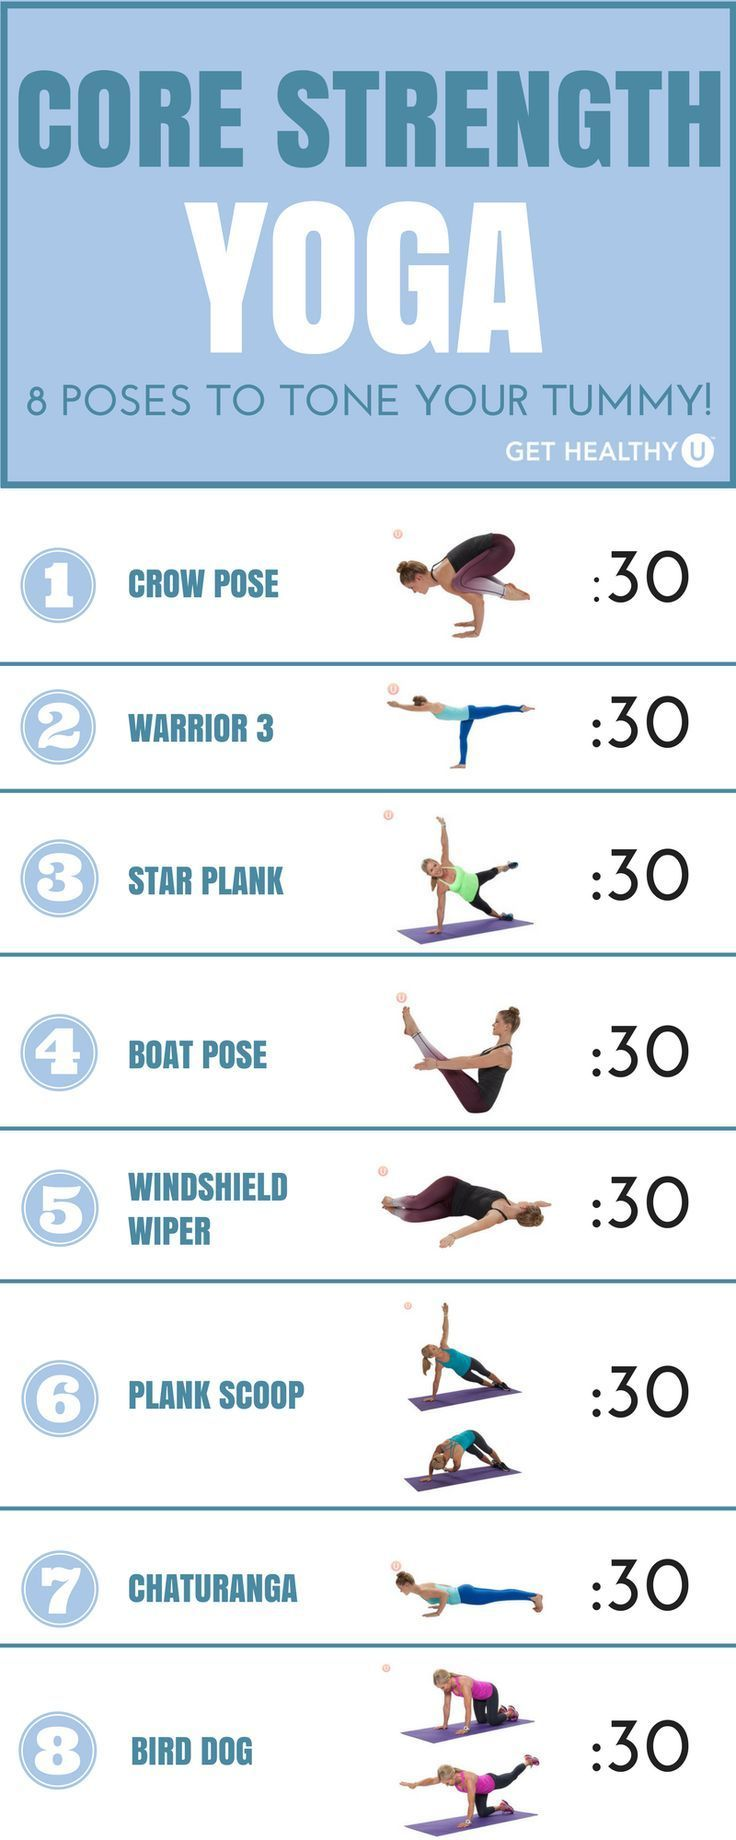 We've pulled out 8 of our favorite yoga poses that emphasize core strength and brought them to you here for your own practice. Try them out one at a time, holding each for 30 seconds. Go through the entire sequence twice; for moves that are one-sided, do one side the first time through and the other side the second time through. Once you have these down, try these and few other core poses in our  6-Minute Yoga For Better Abs workout! This a great postpartum workout too!